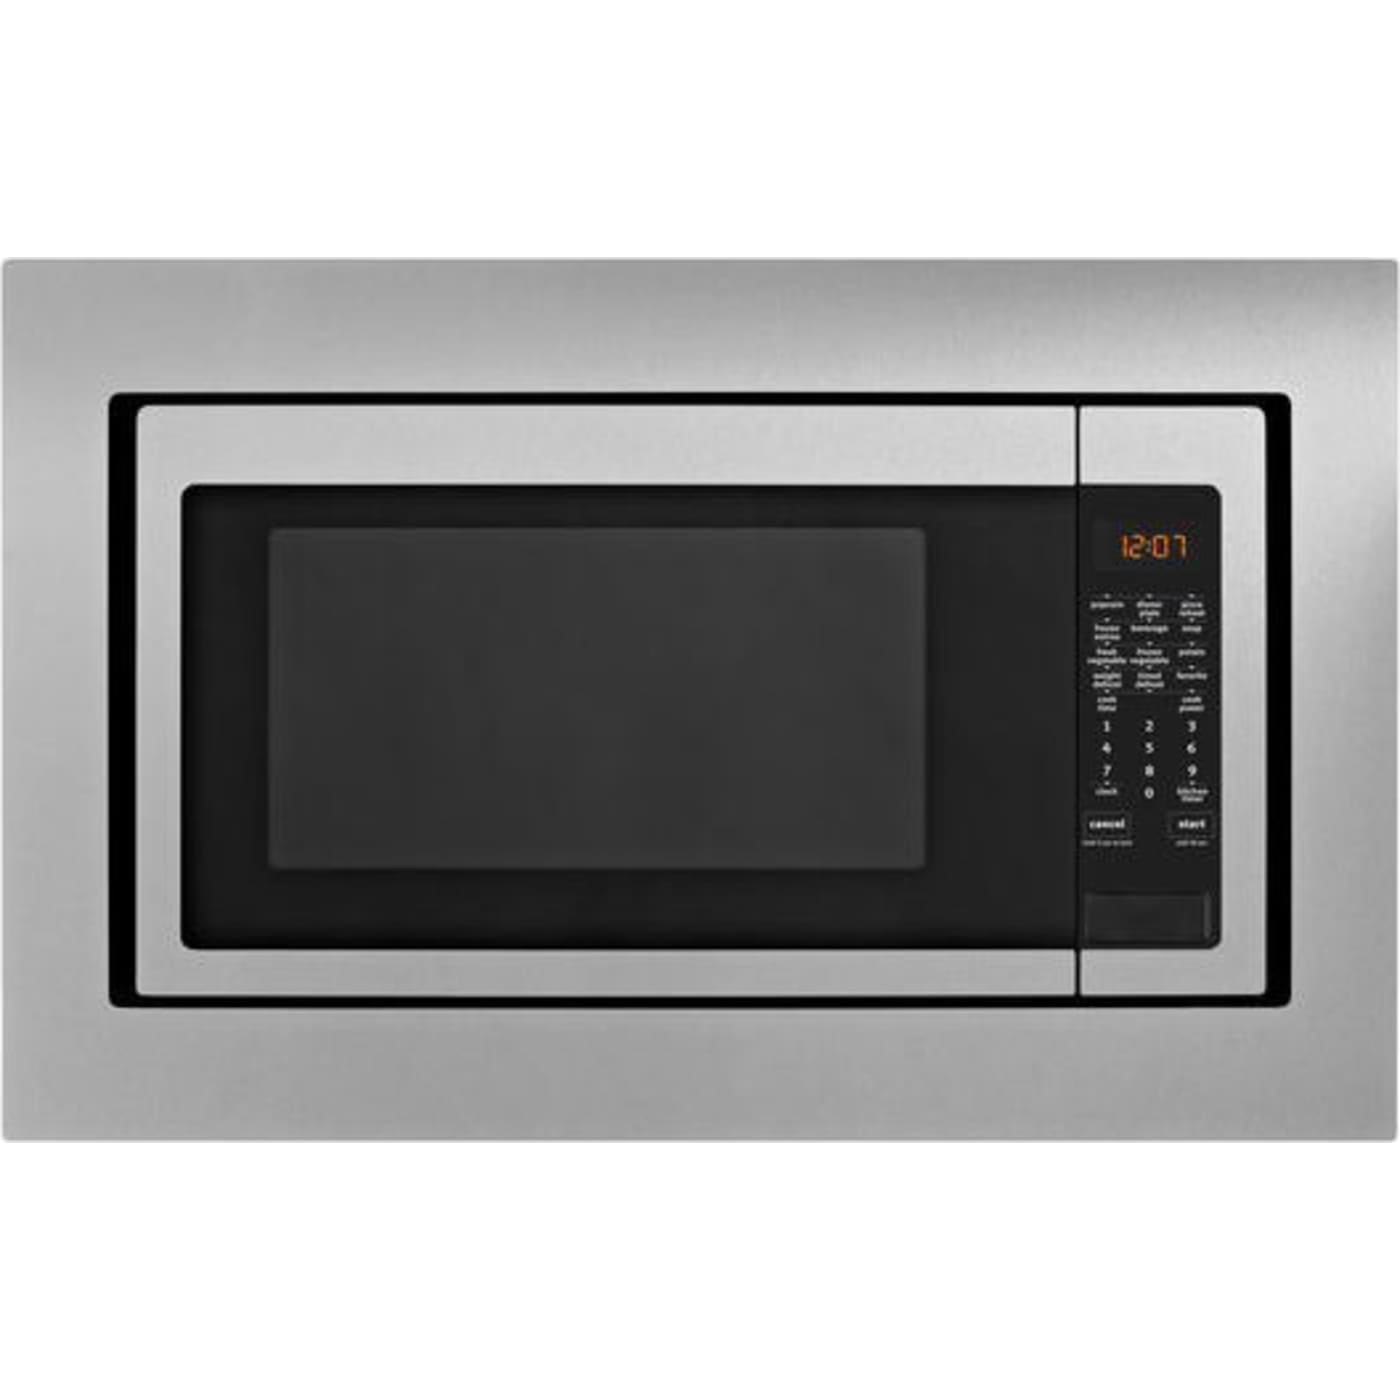 whirlpool cooking smart and countertop automation include kitchen yummly announcements microwave